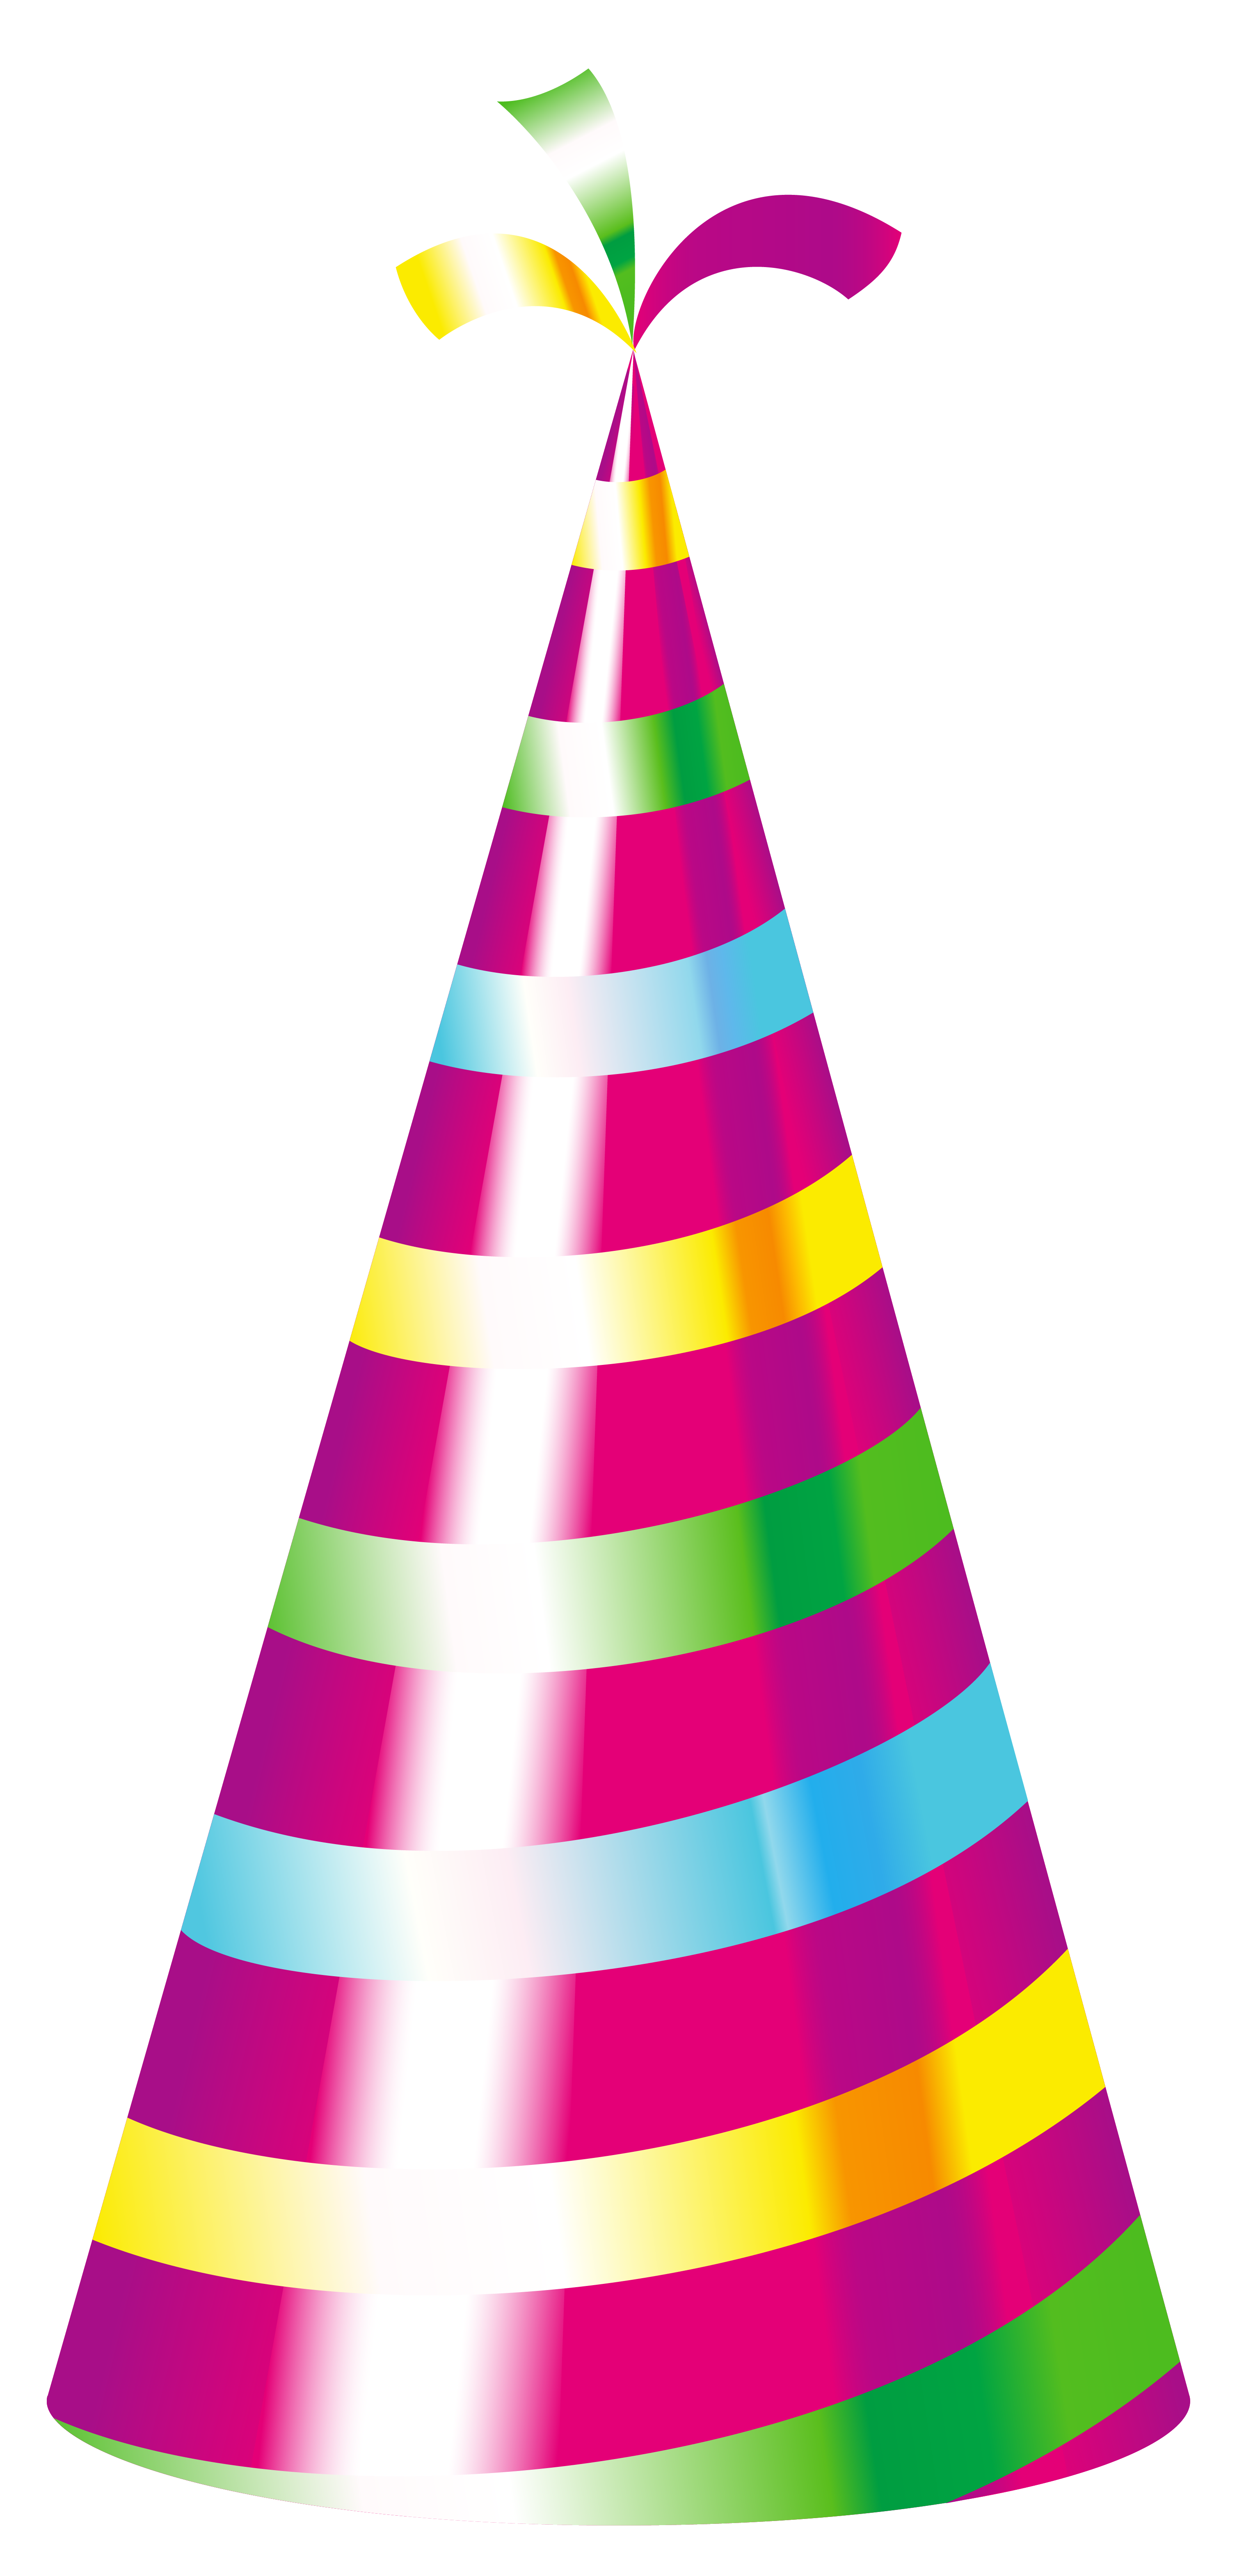 Download birthday hat free. Horn clipart celebration